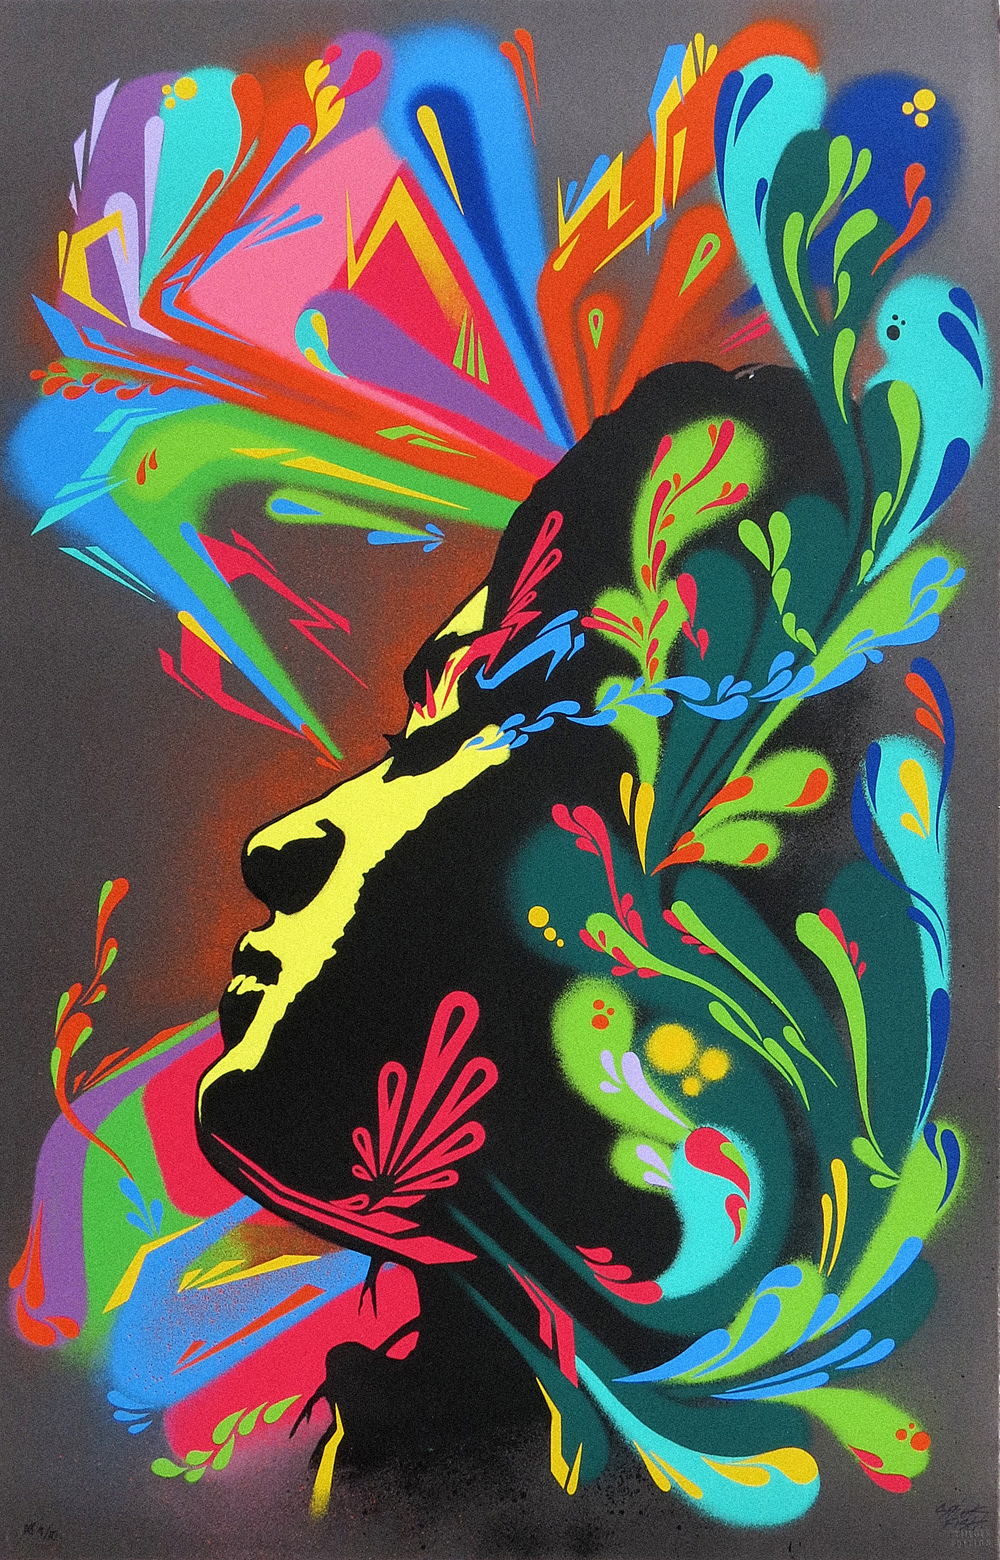 stinkfish_tropical spray colour_screen print on paper_AP 9 of 10_86x56 cm_£300.jpg